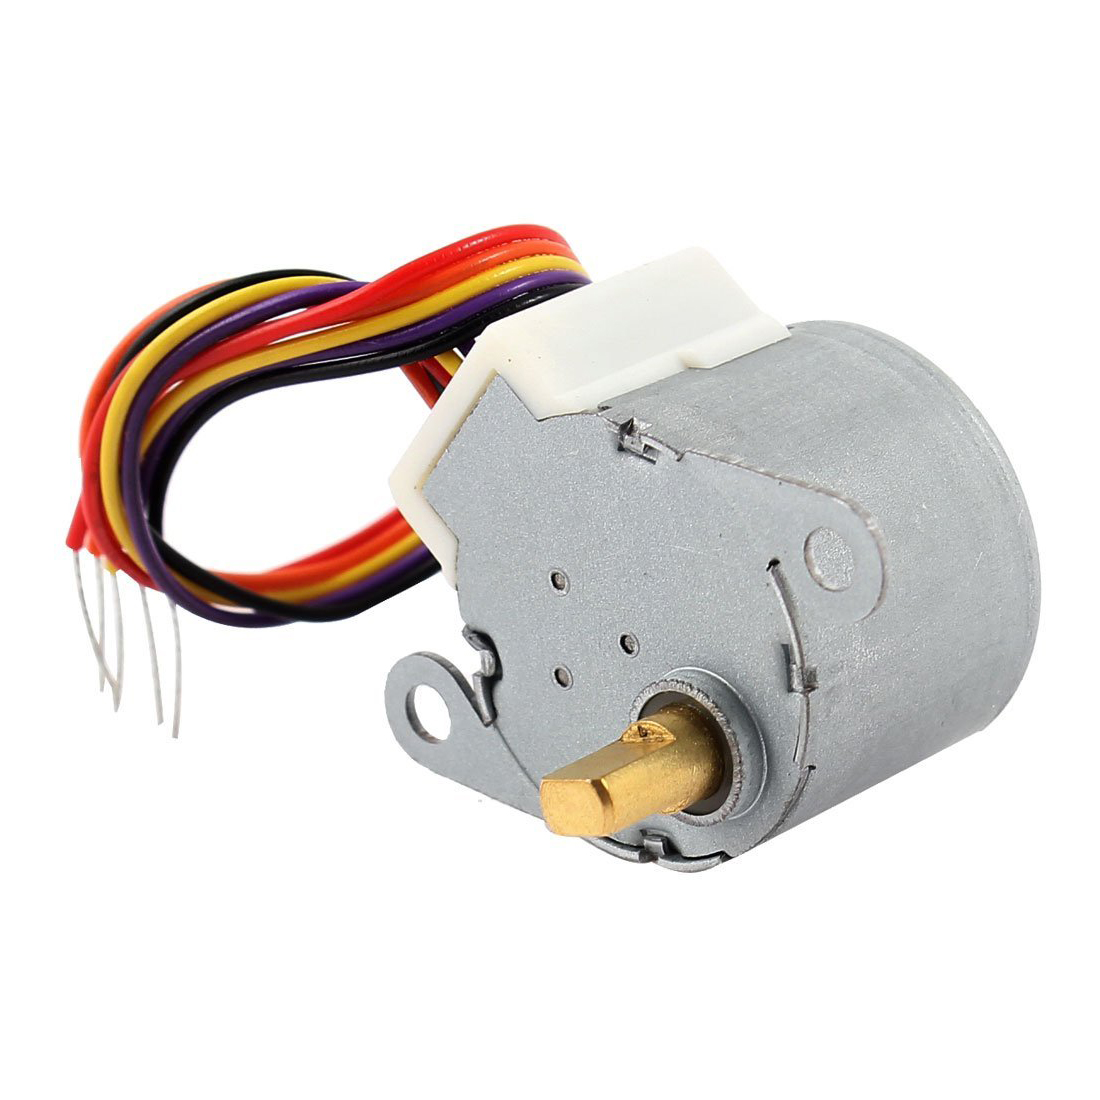 CNIM Hot <font><b>DC</b></font> <font><b>12V</b></font> CNC Reducing Stepping Stepper Motor 0.6A 10oz.in <font><b>24BYJ48</b></font> Silver image